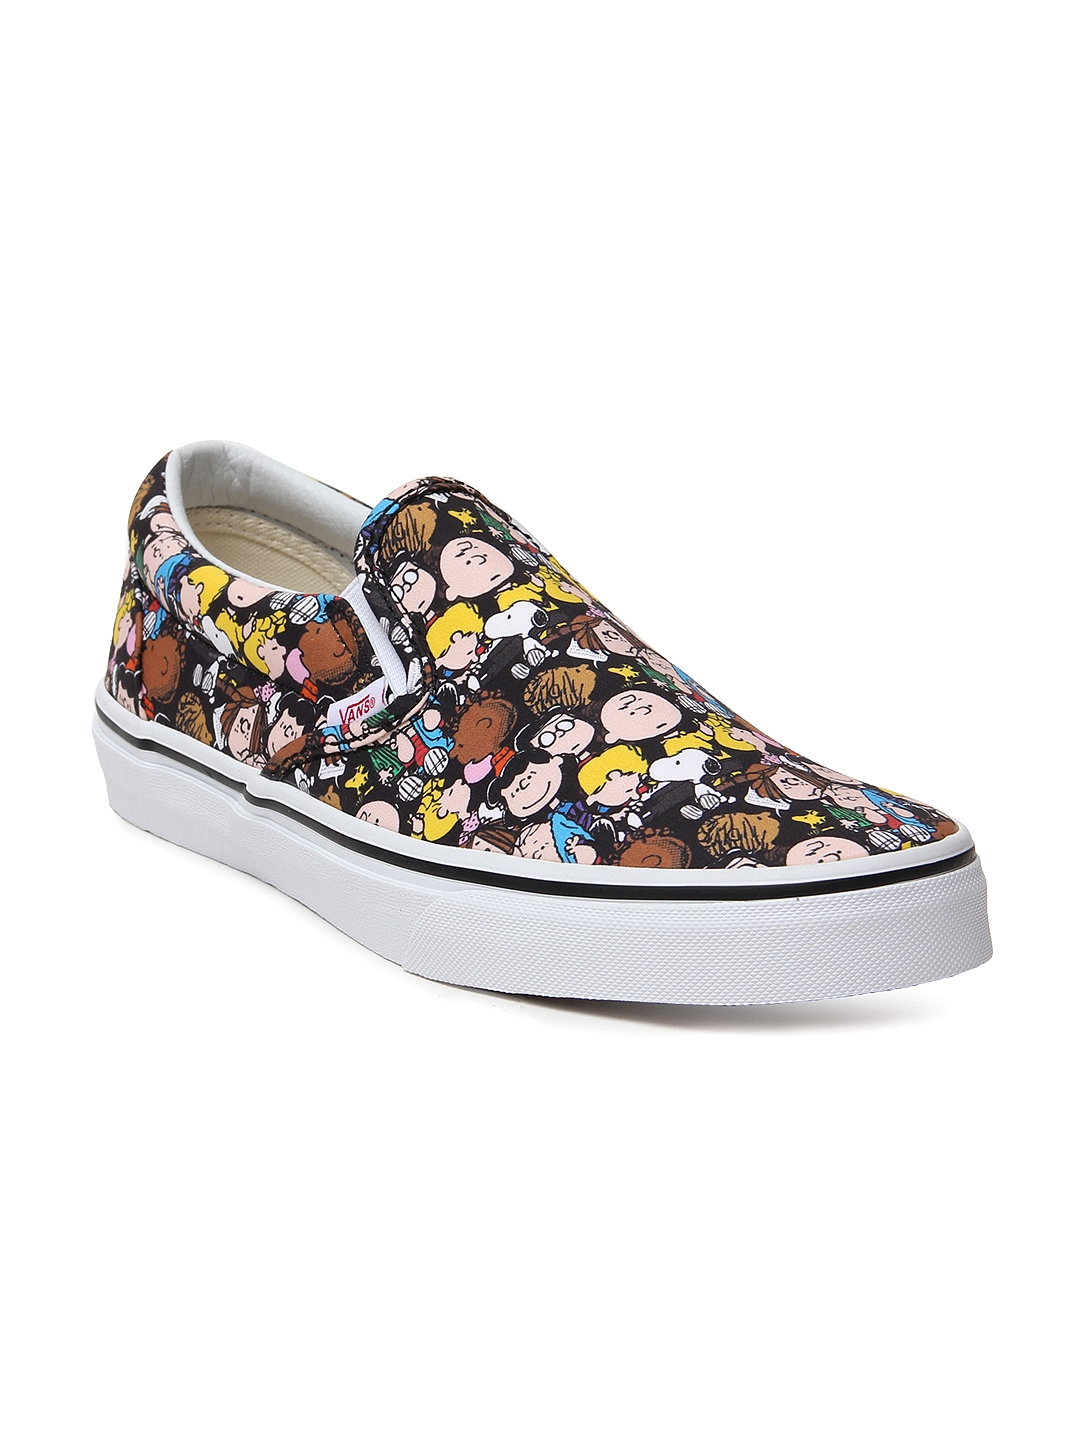 32c515d42cfe06 Buy Vans Unisex Multicoloured Classic Printed Slip On Sneakers ...